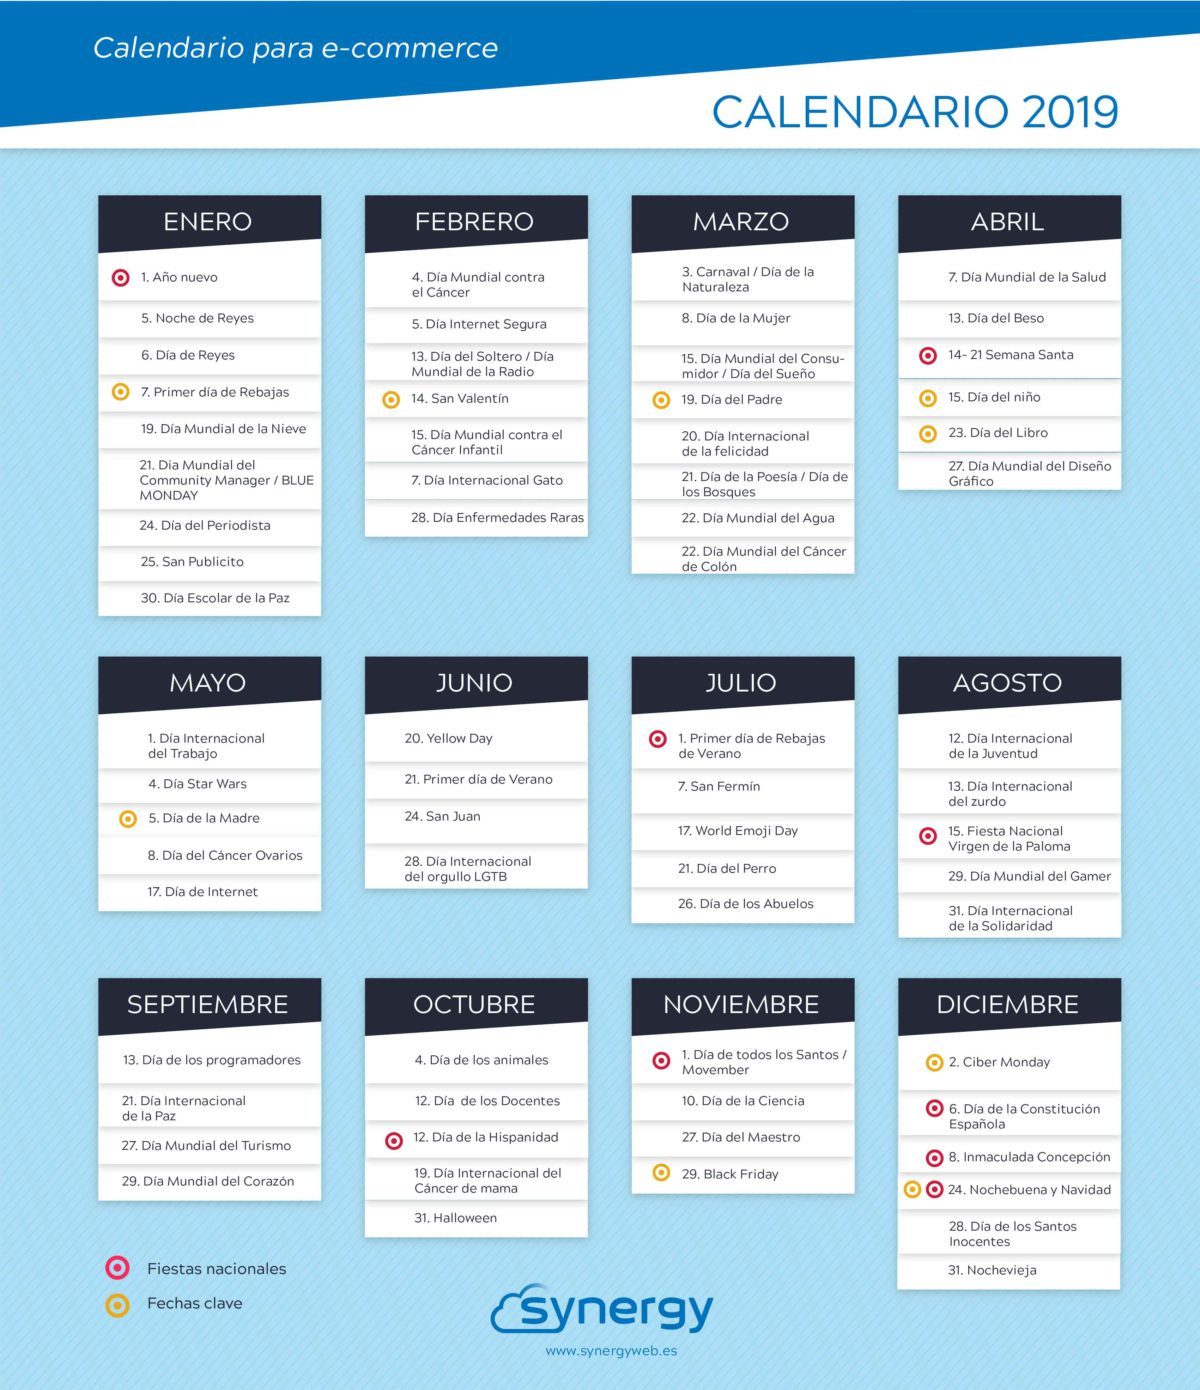 Calendario de ecommerce y marketing 2019